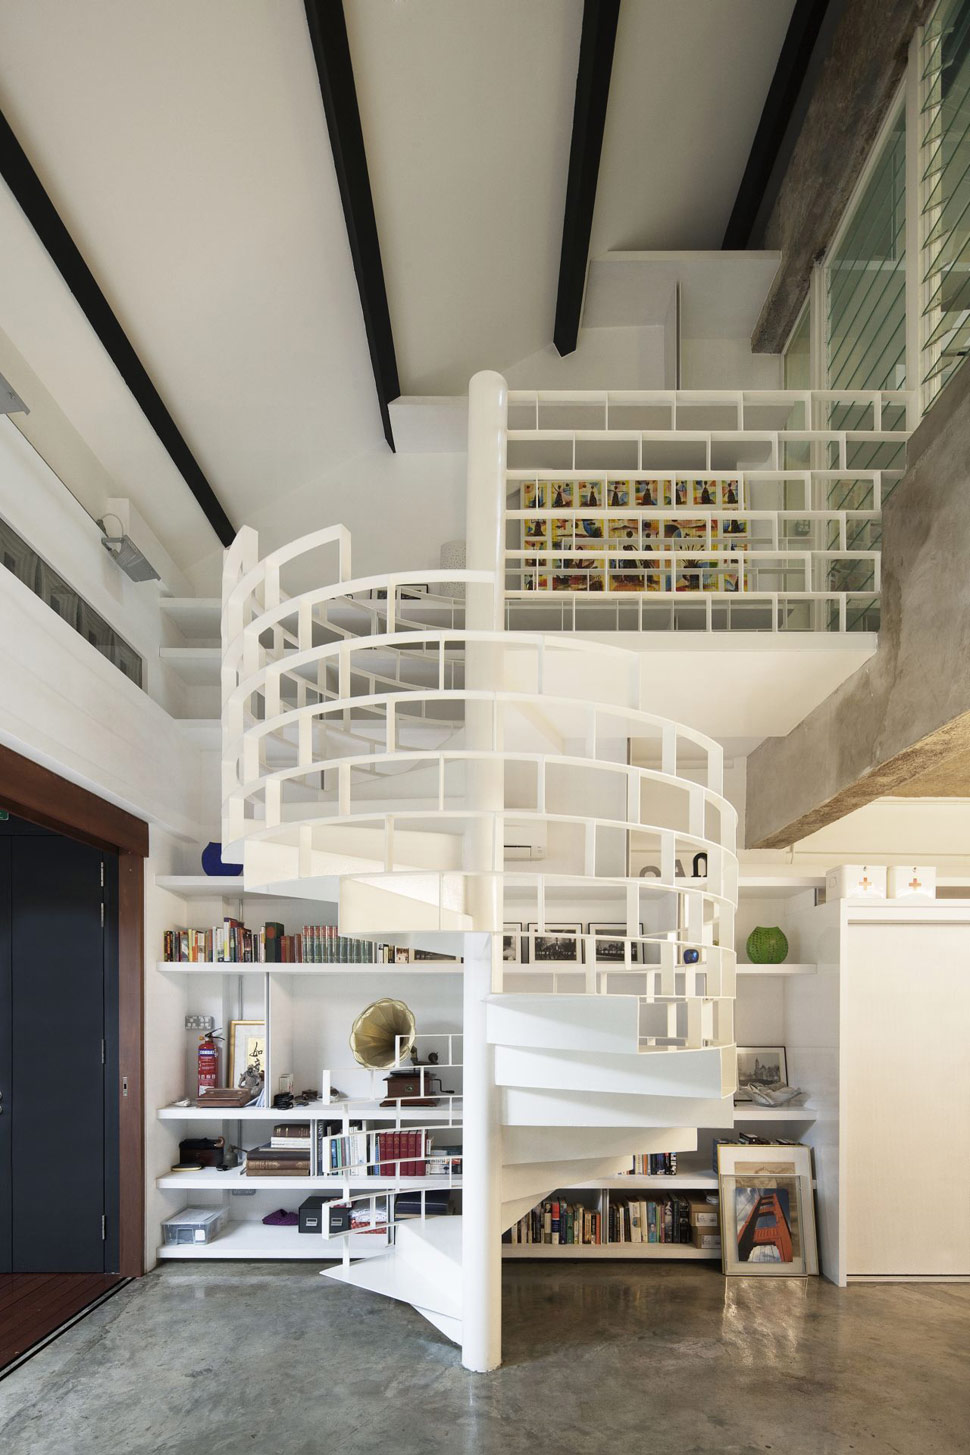 modern-spiral-stairs-with-creative-banister-stair-railings.jpg